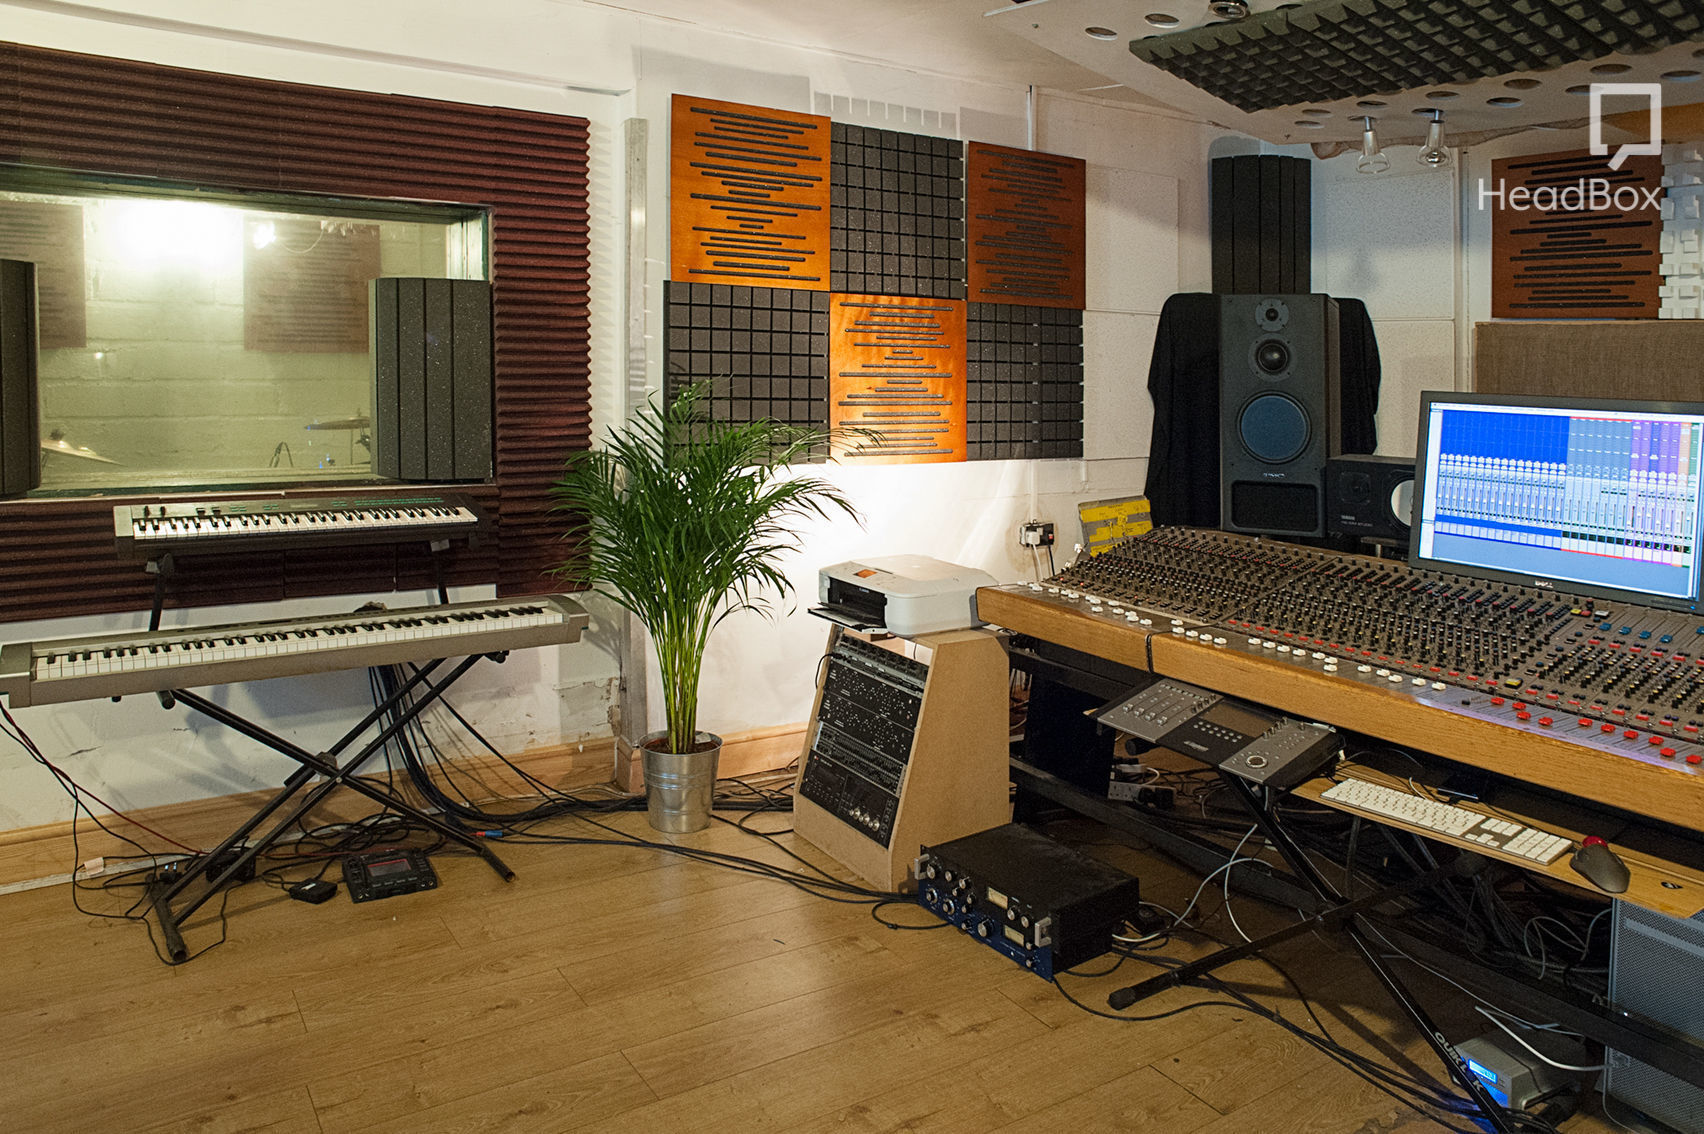 A recording studio in London which has a mixing deck and computer screens. On the left hand side of the studio there is a double keyboard which faces the vocal booth window. There is soft lighting and a green grassy plant next to the keyboard